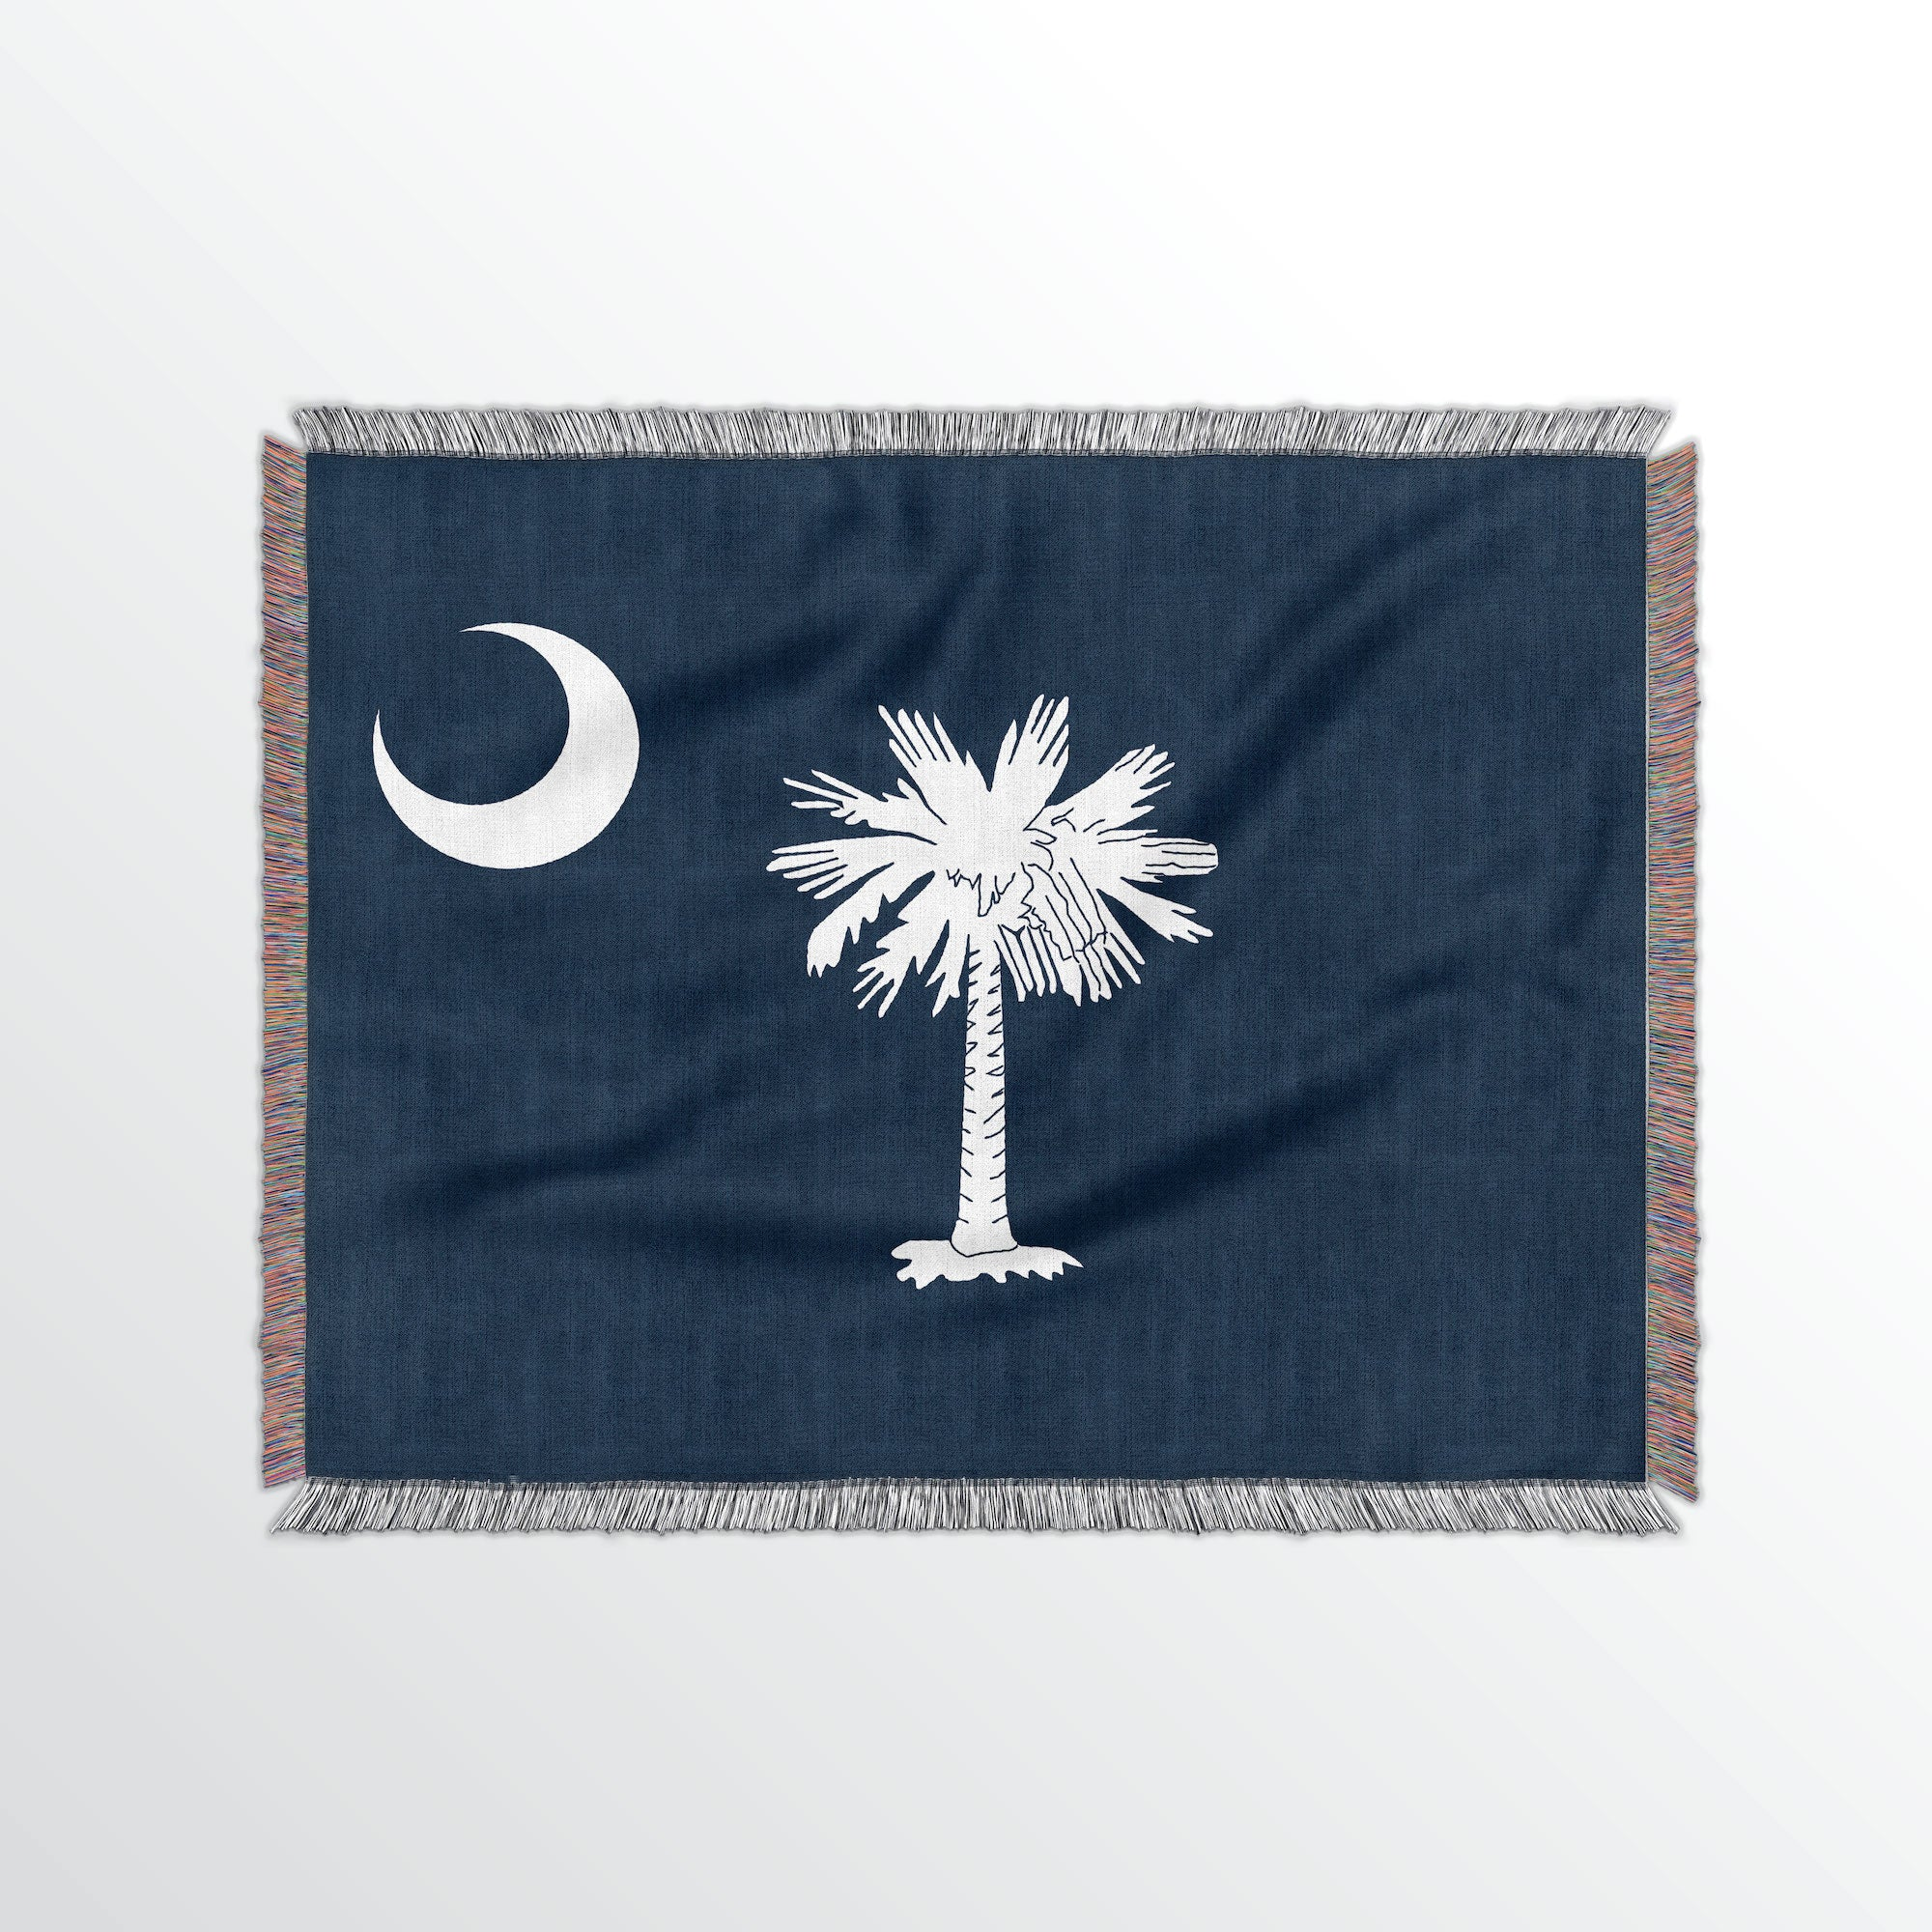 South Carolina State Woven Cotton Blanet - Point Two Design